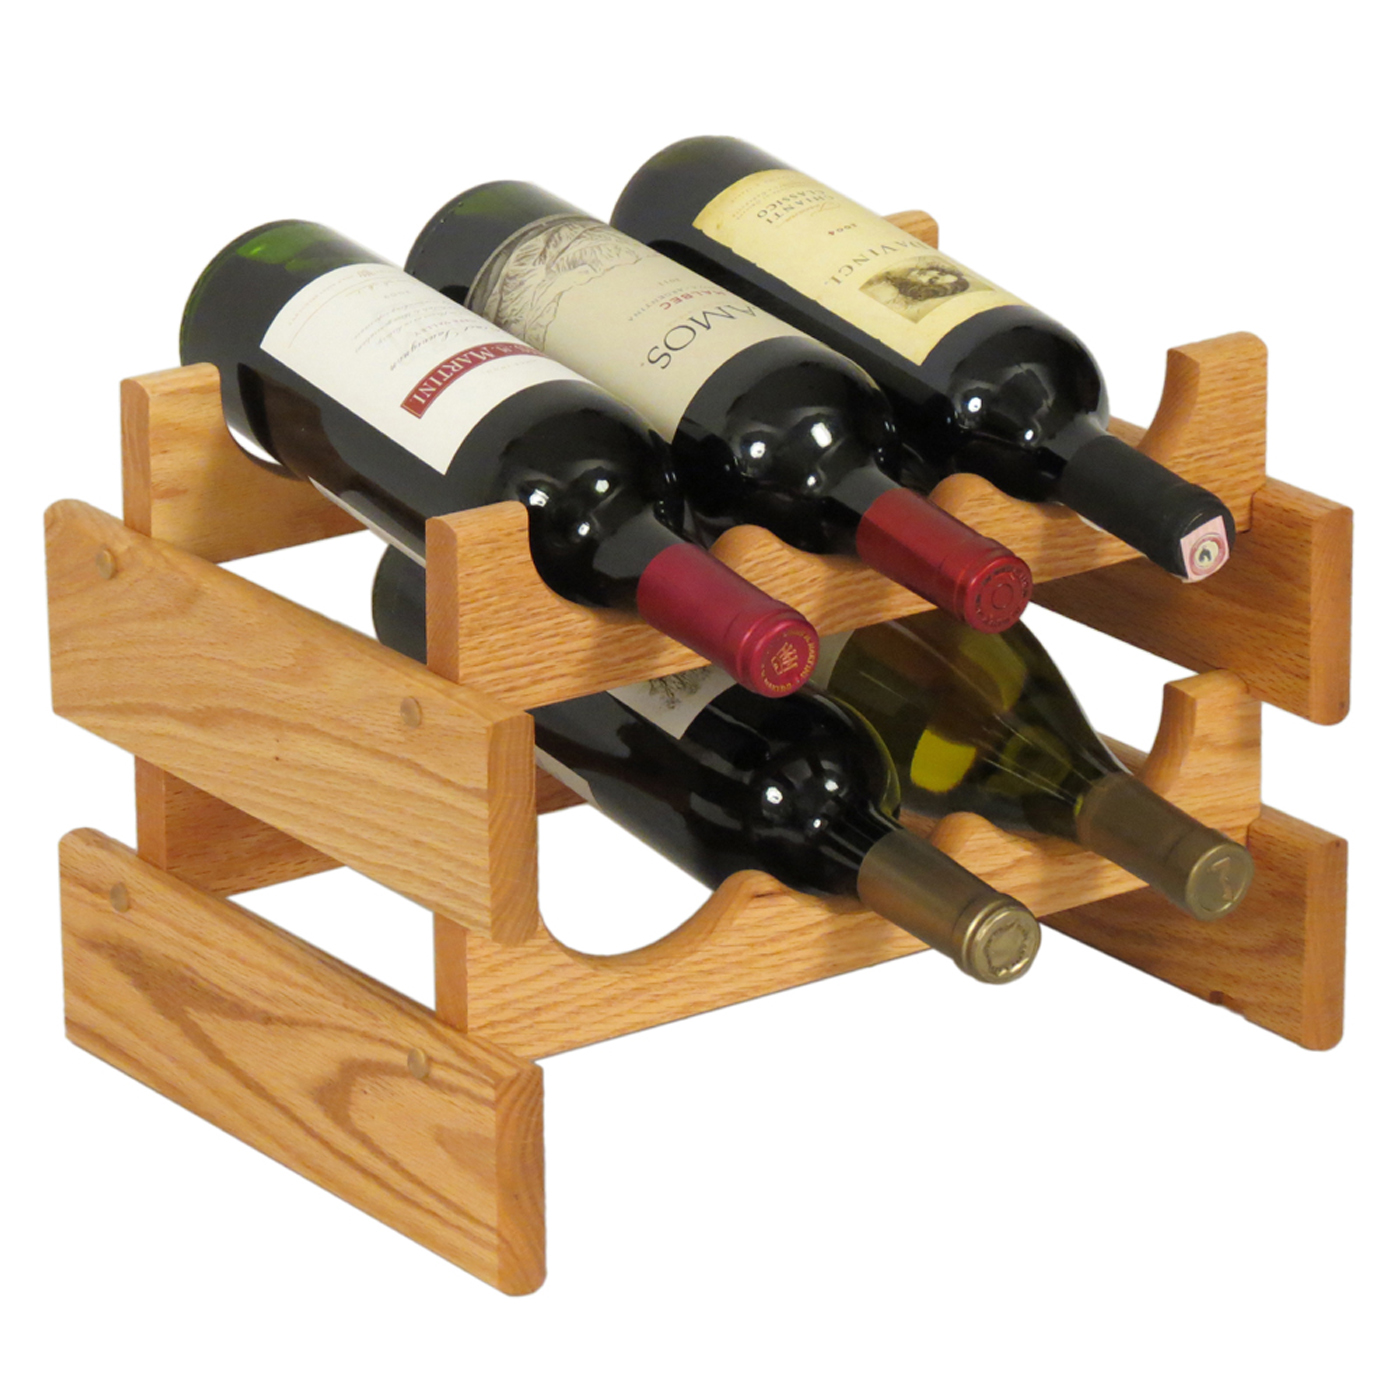 6 Bottle Wooden Wine Rack Wine Rack - 6 Bottle In Wine Racks